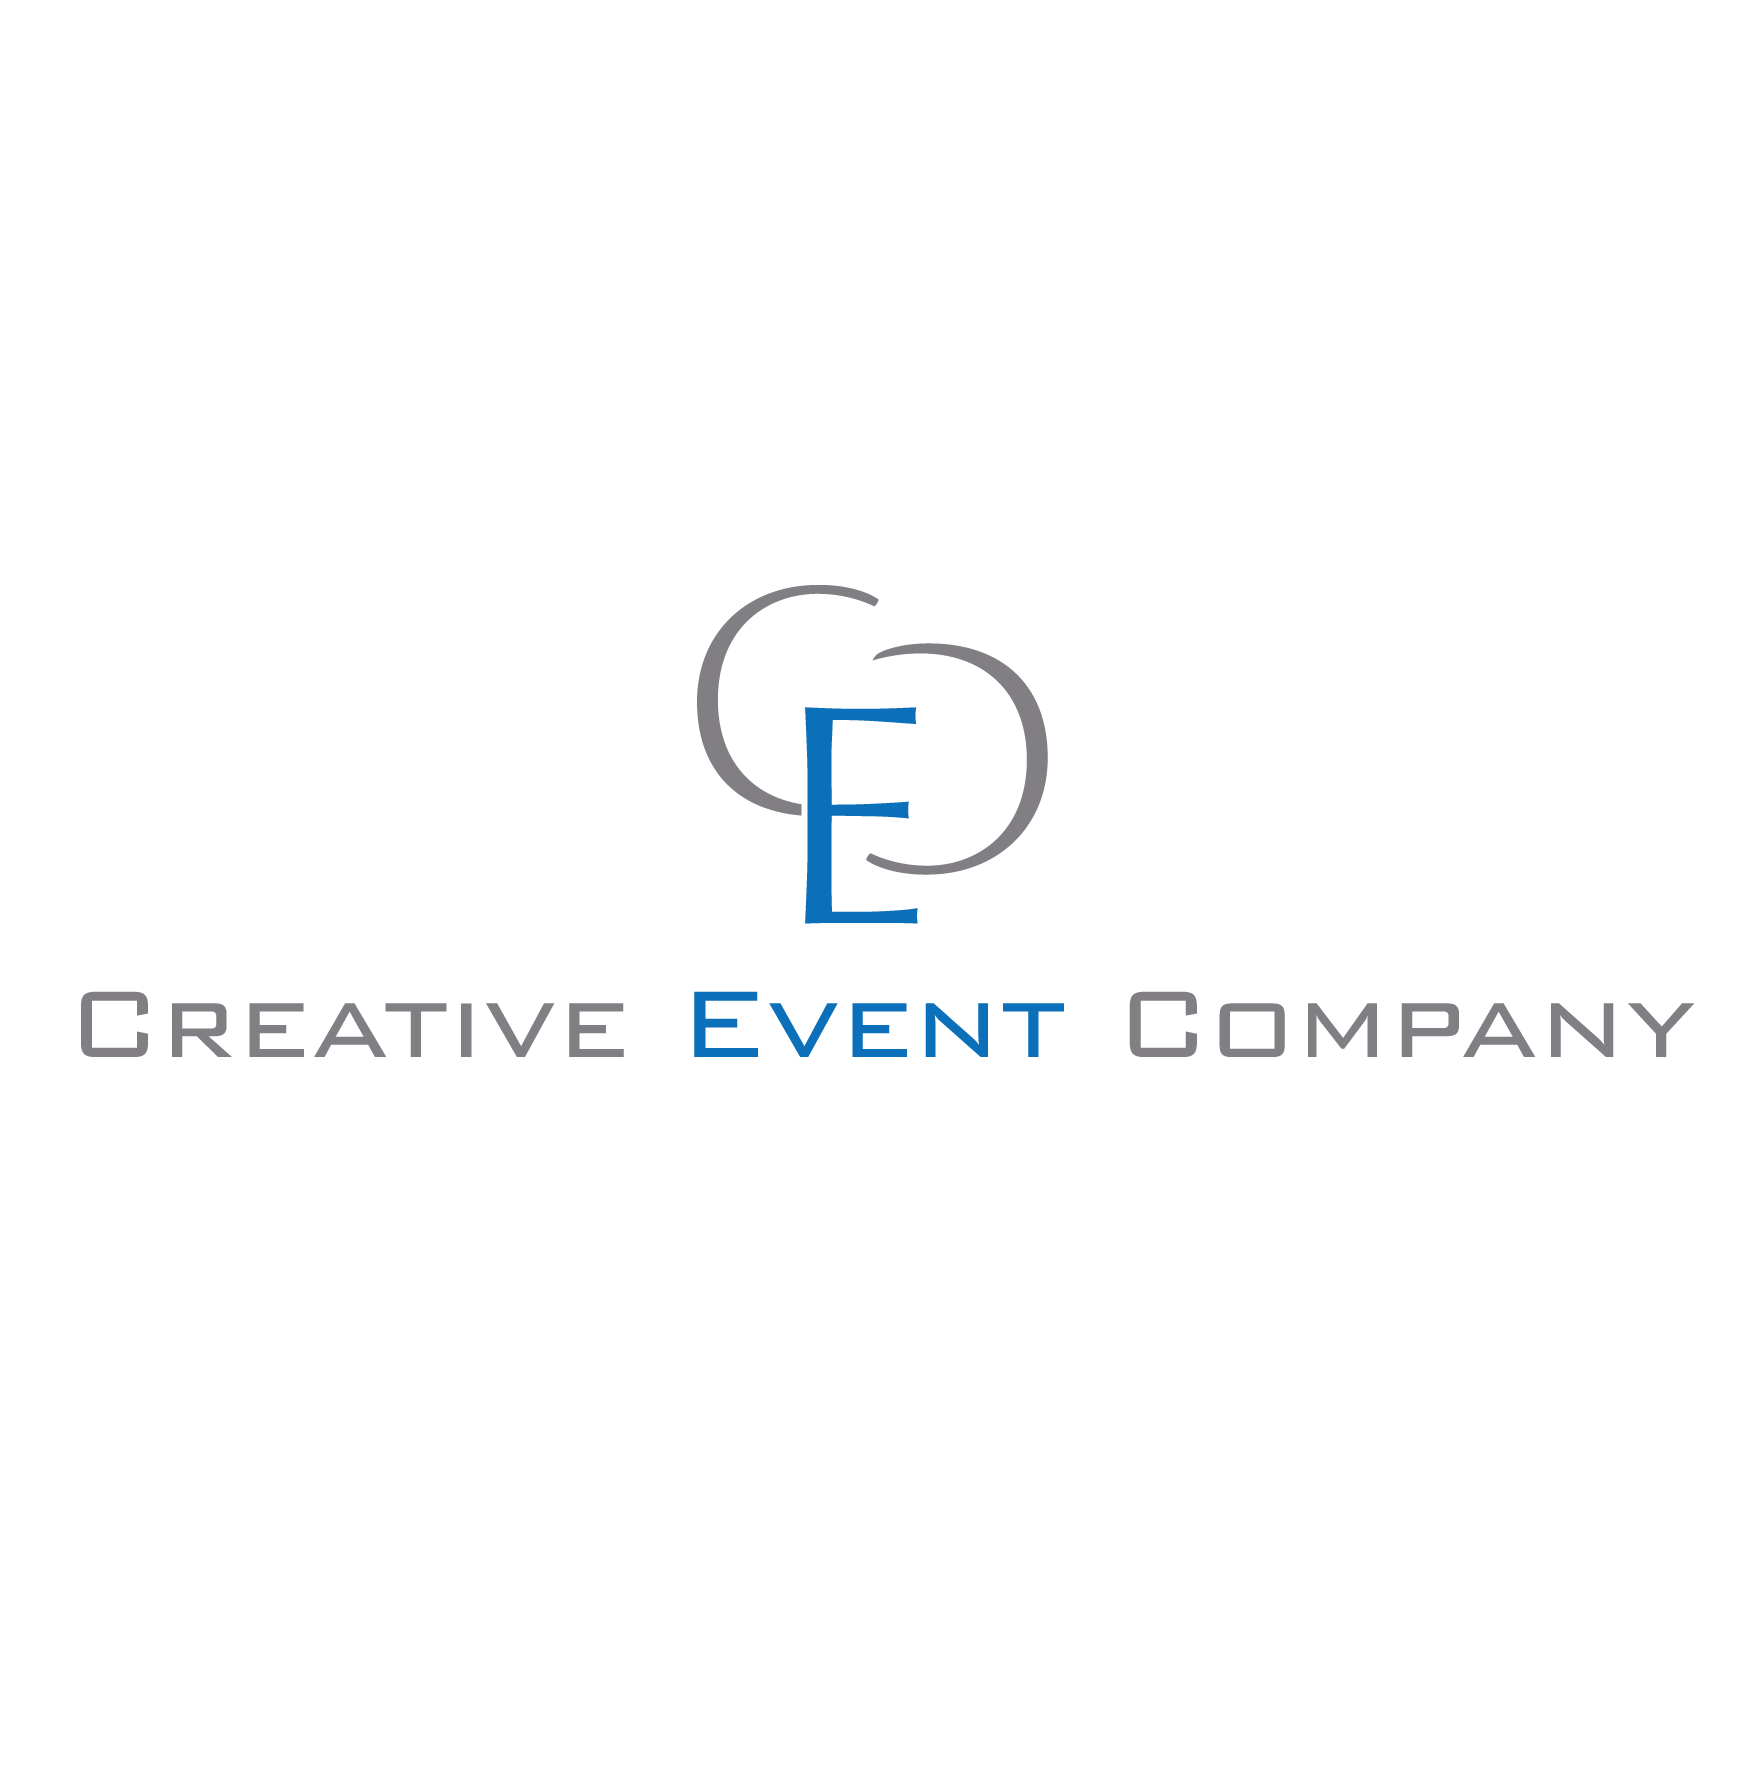 Creative Event Company